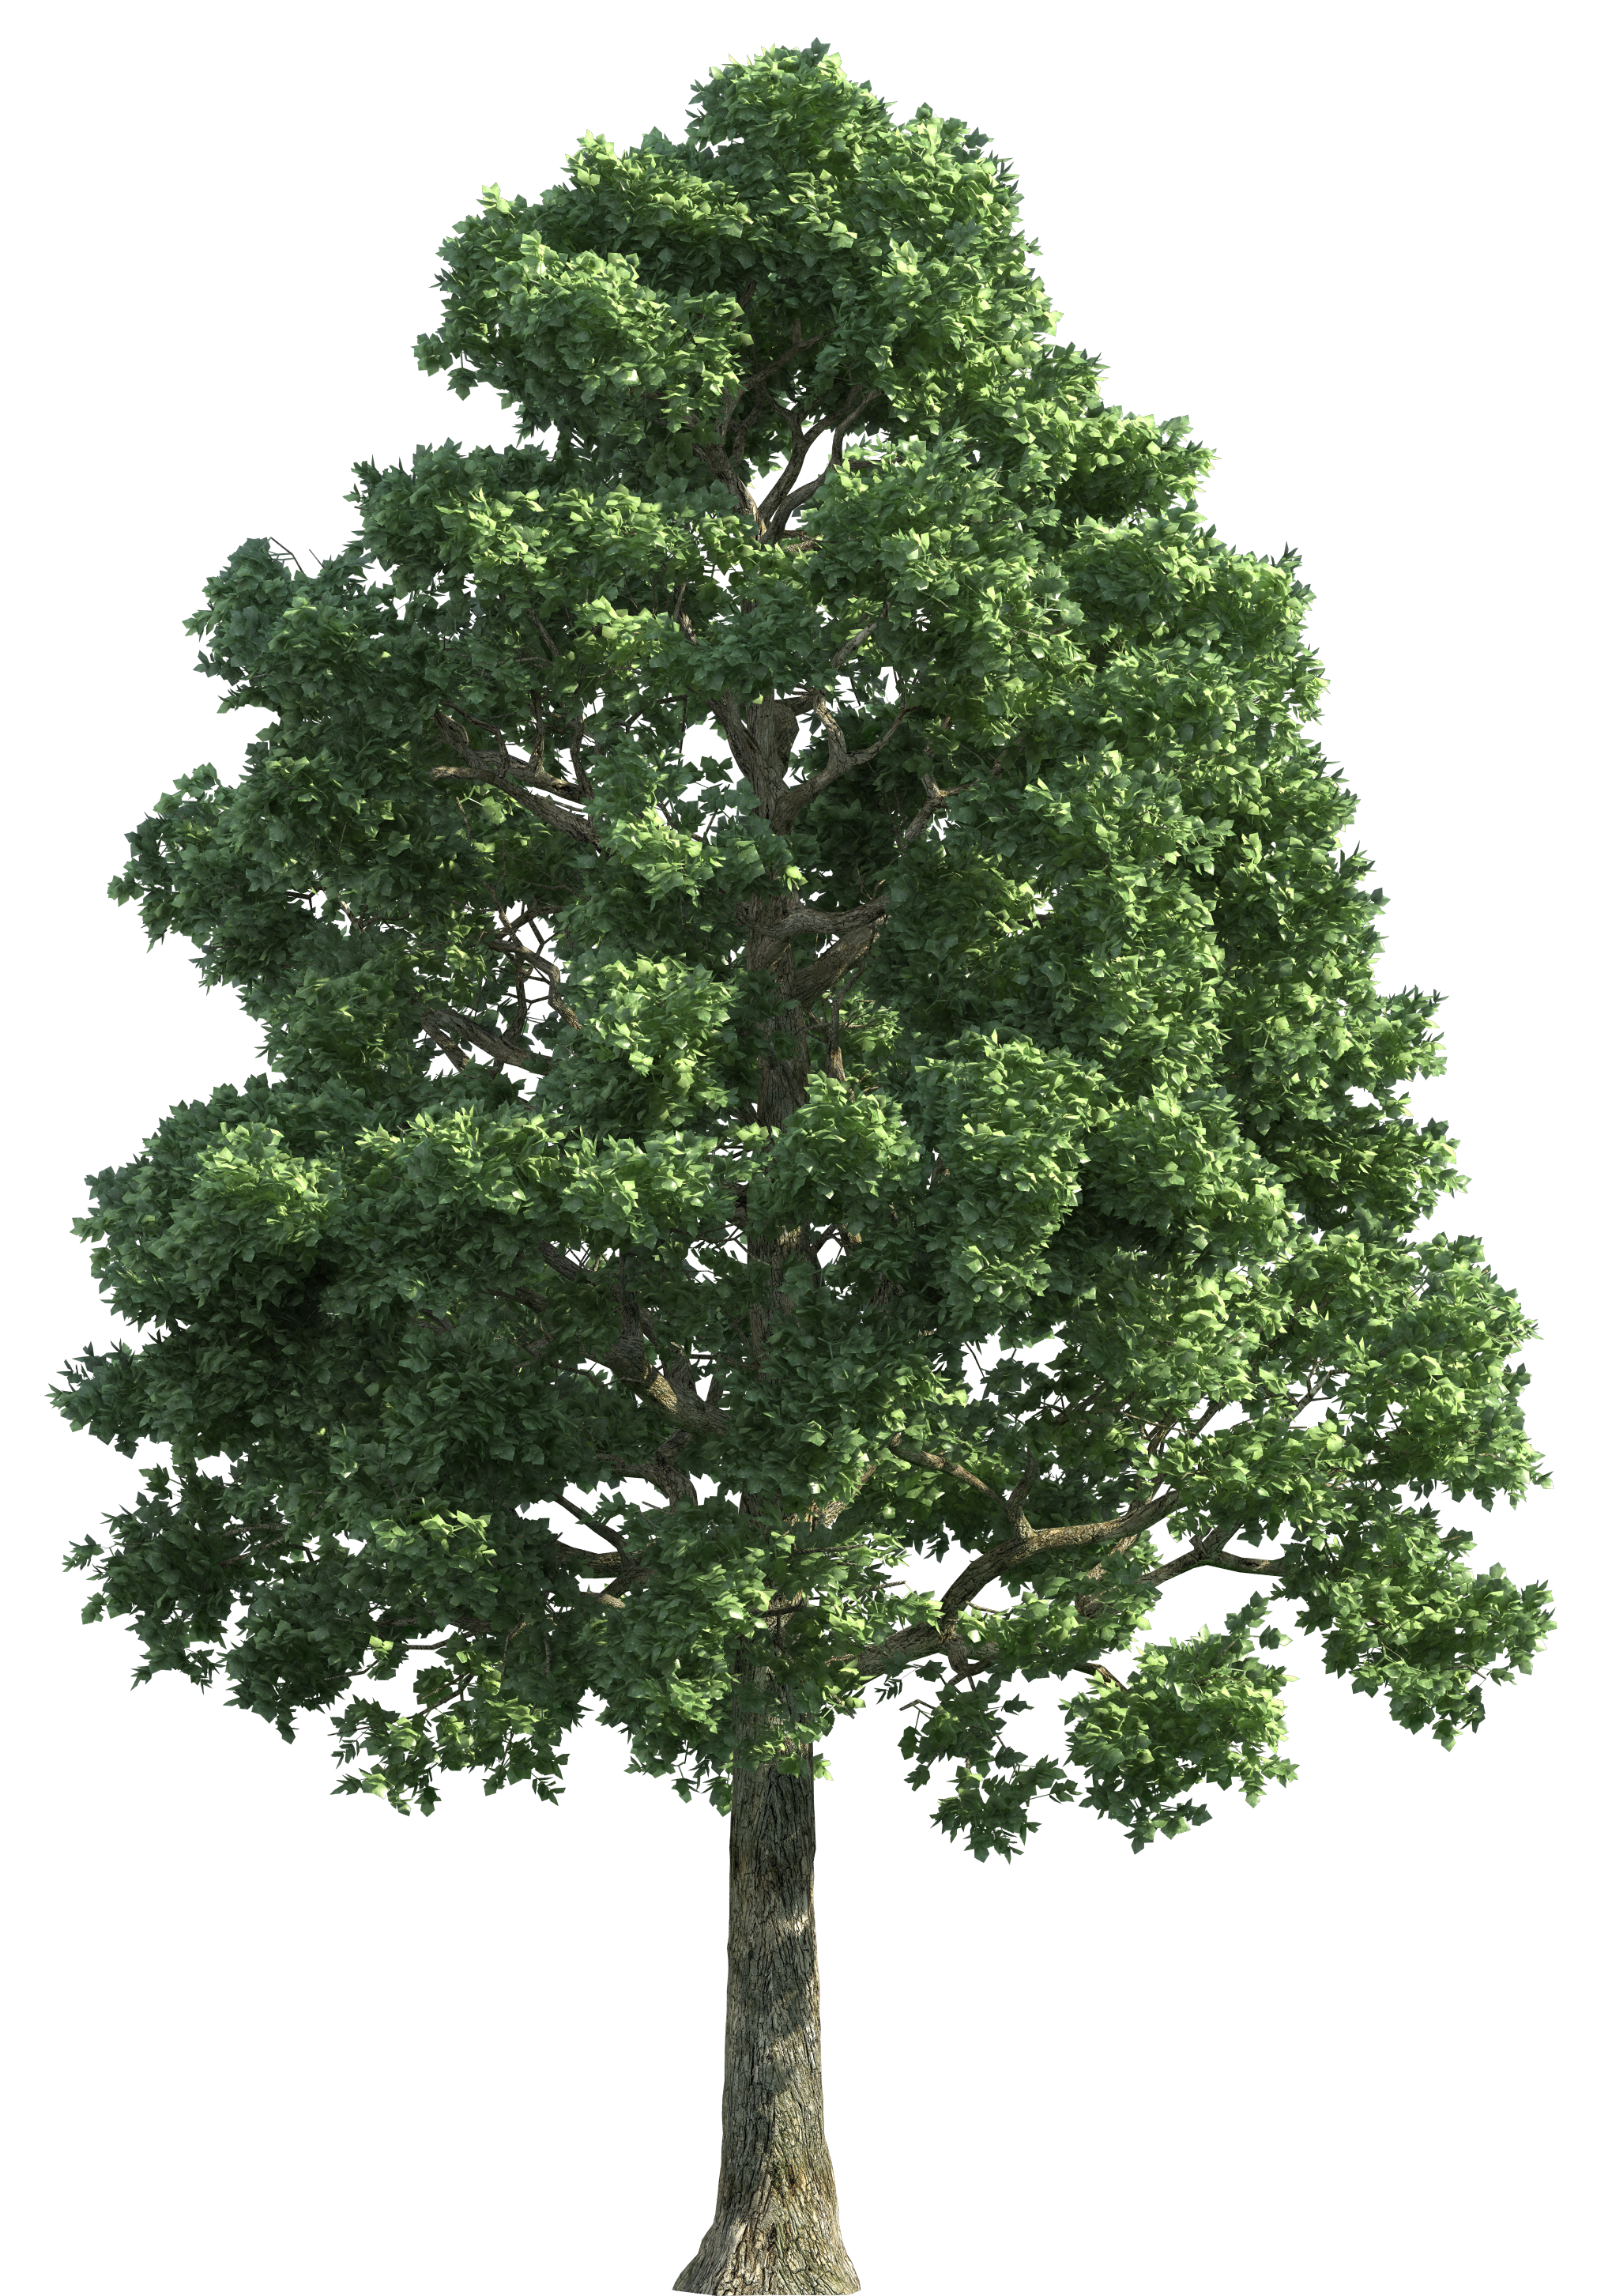 Clipart trees high resolution. Green realistic tree png